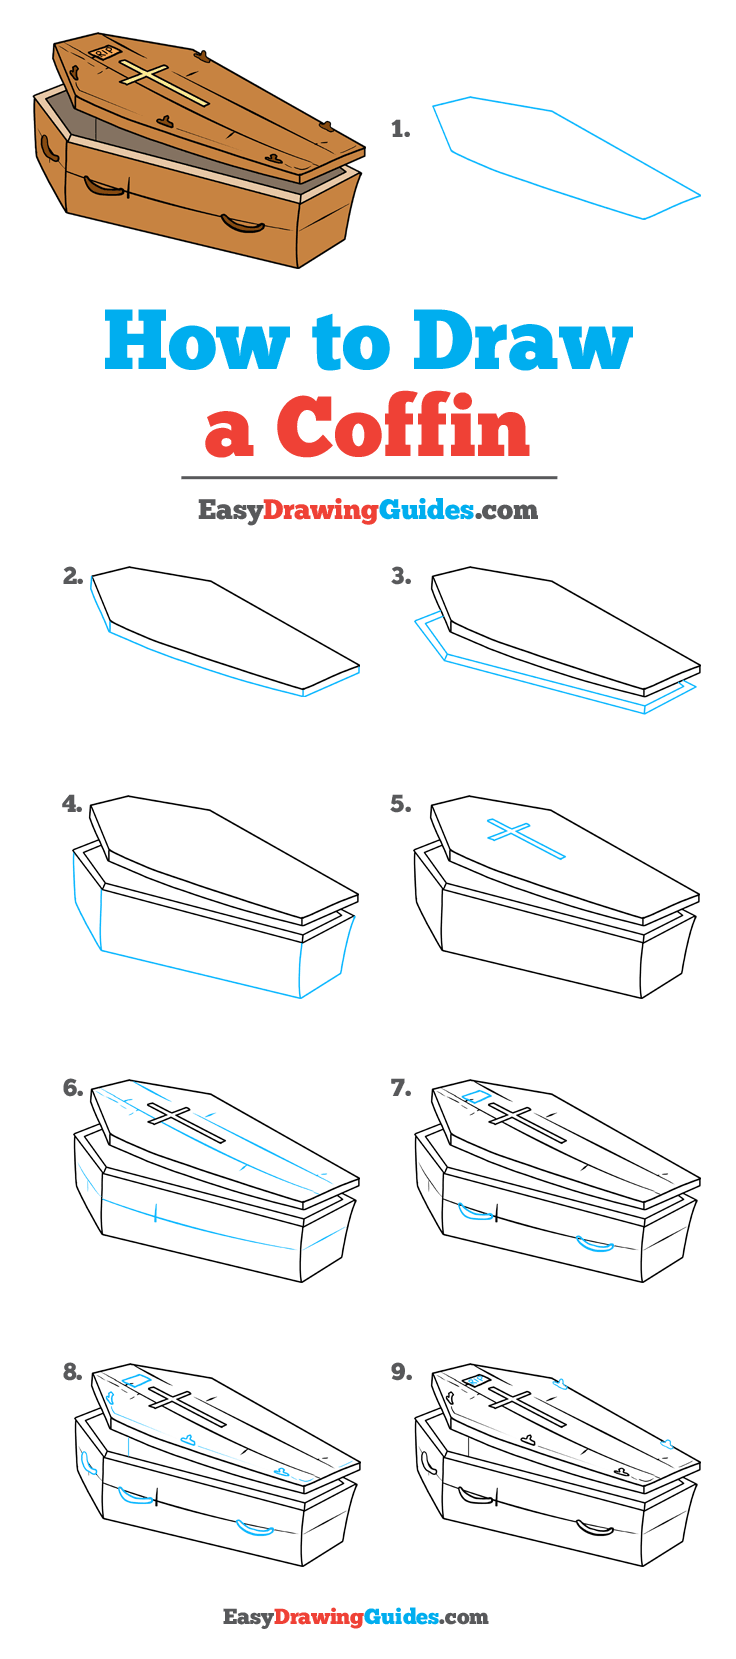 How to Draw Coffin